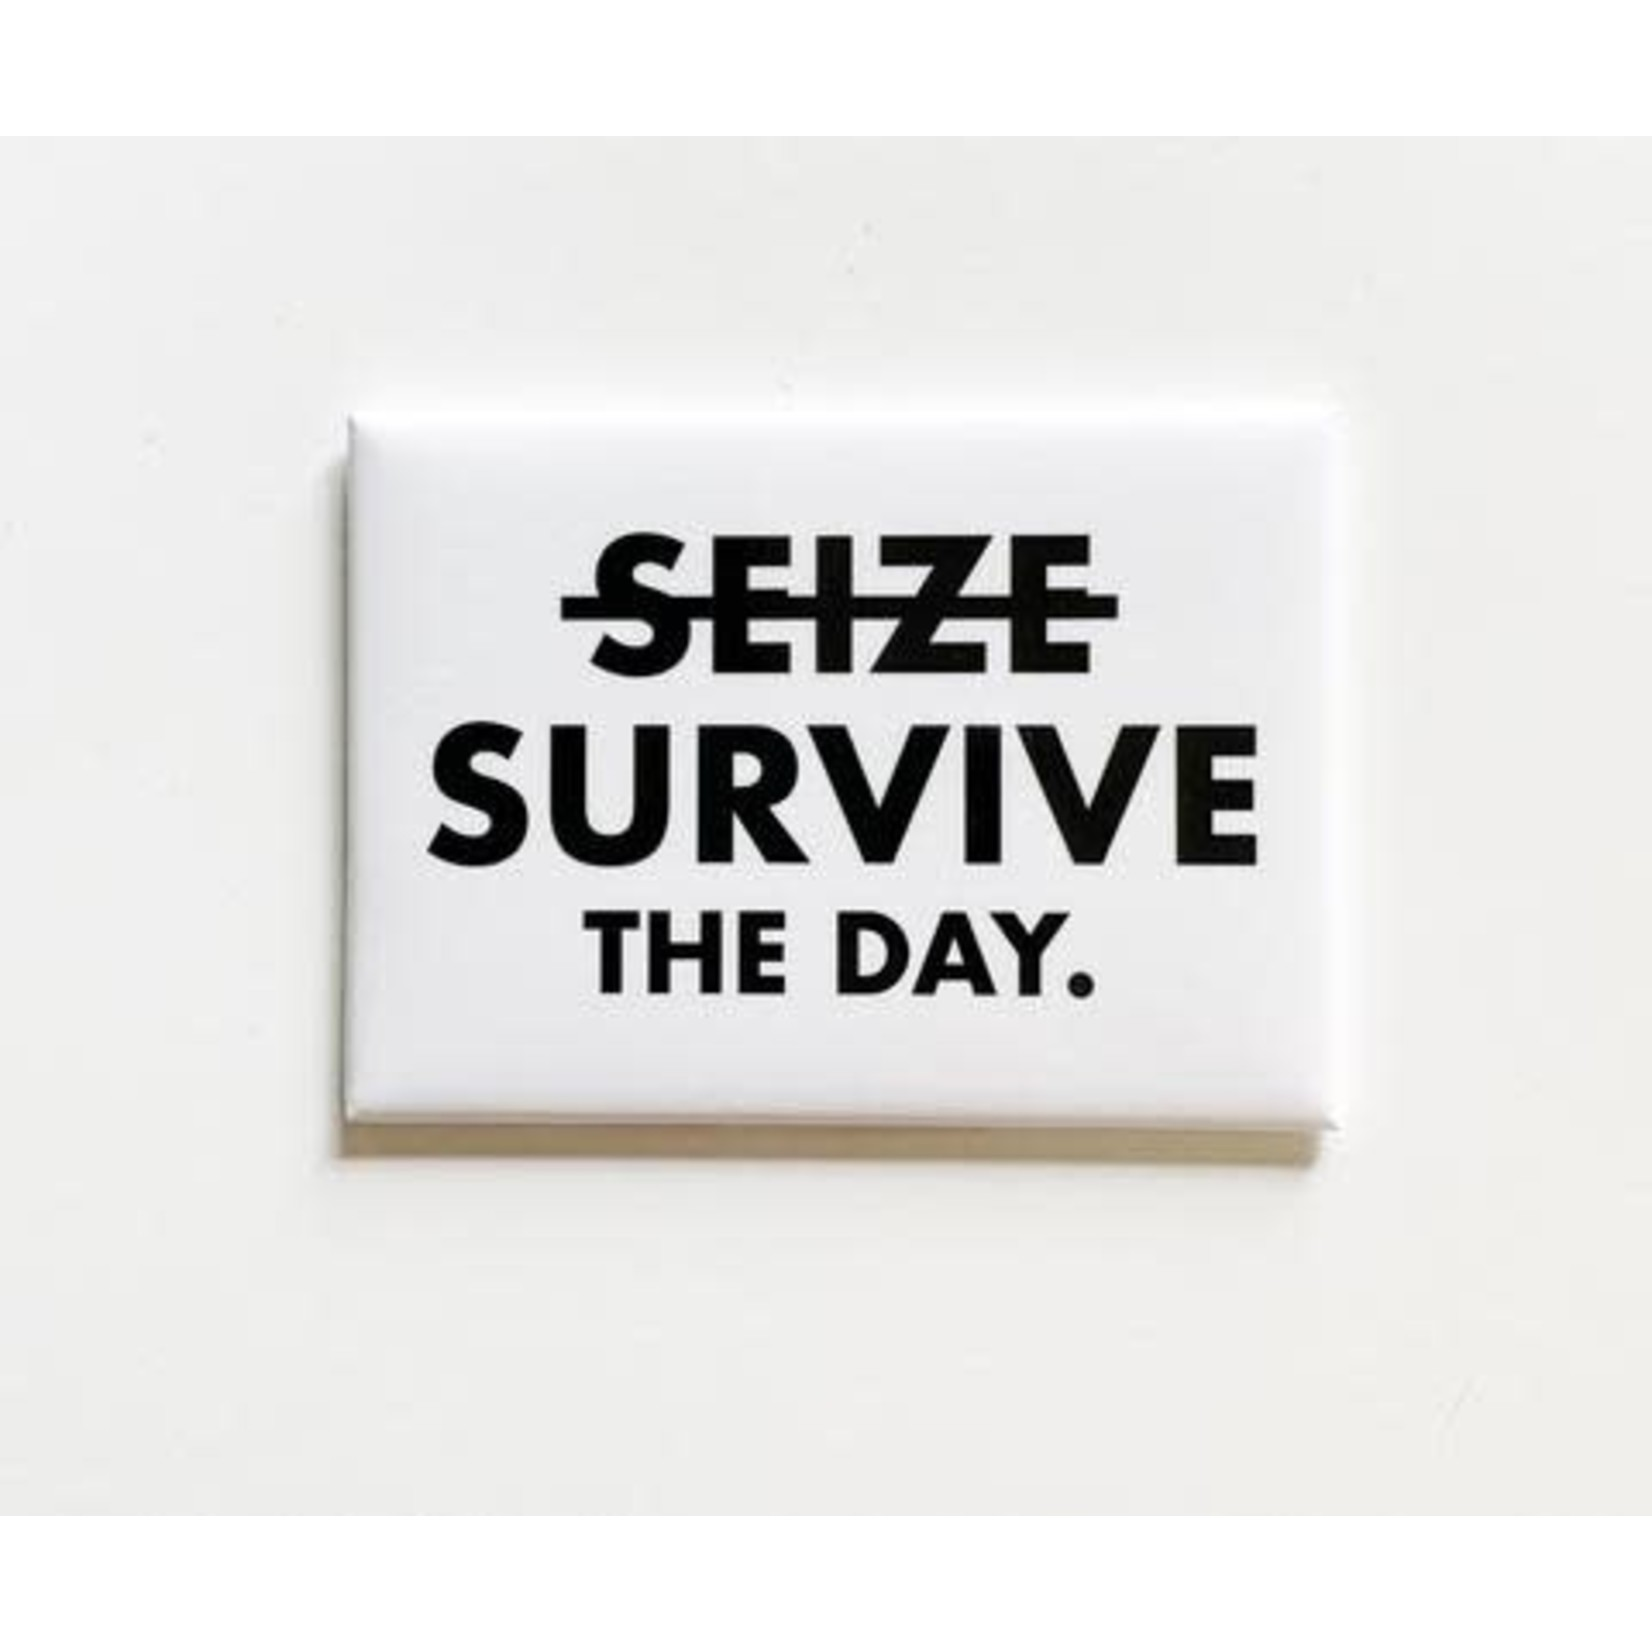 Pretty Alright Goods Magnet - Seize / Survive The Day